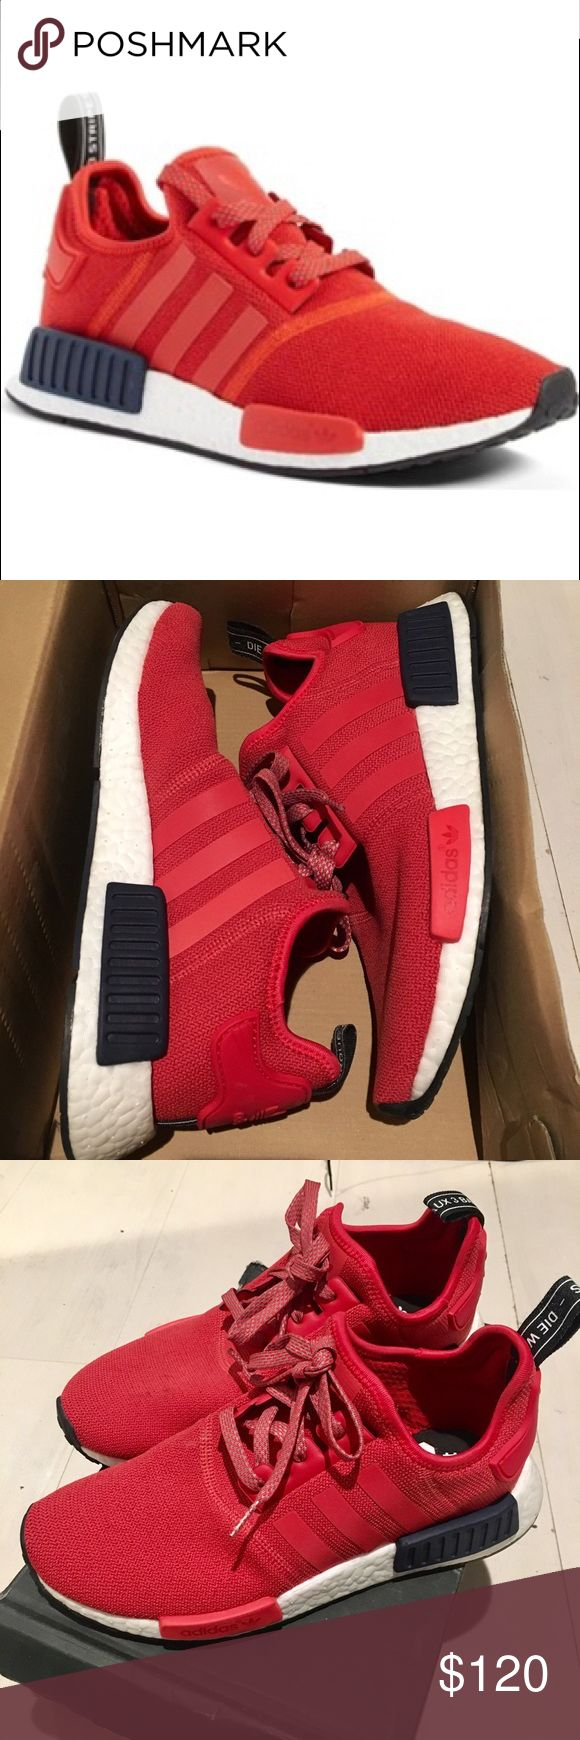 ADIDAS NMD_R1 W - Red Adidas NMD_R1 in a Women's US 8. Great condition. Worn twice. NOTE: all Ultra Boosts & NMD's do not come with insoles. Comes w/original box. Adidas Shoes Athletic Shoes